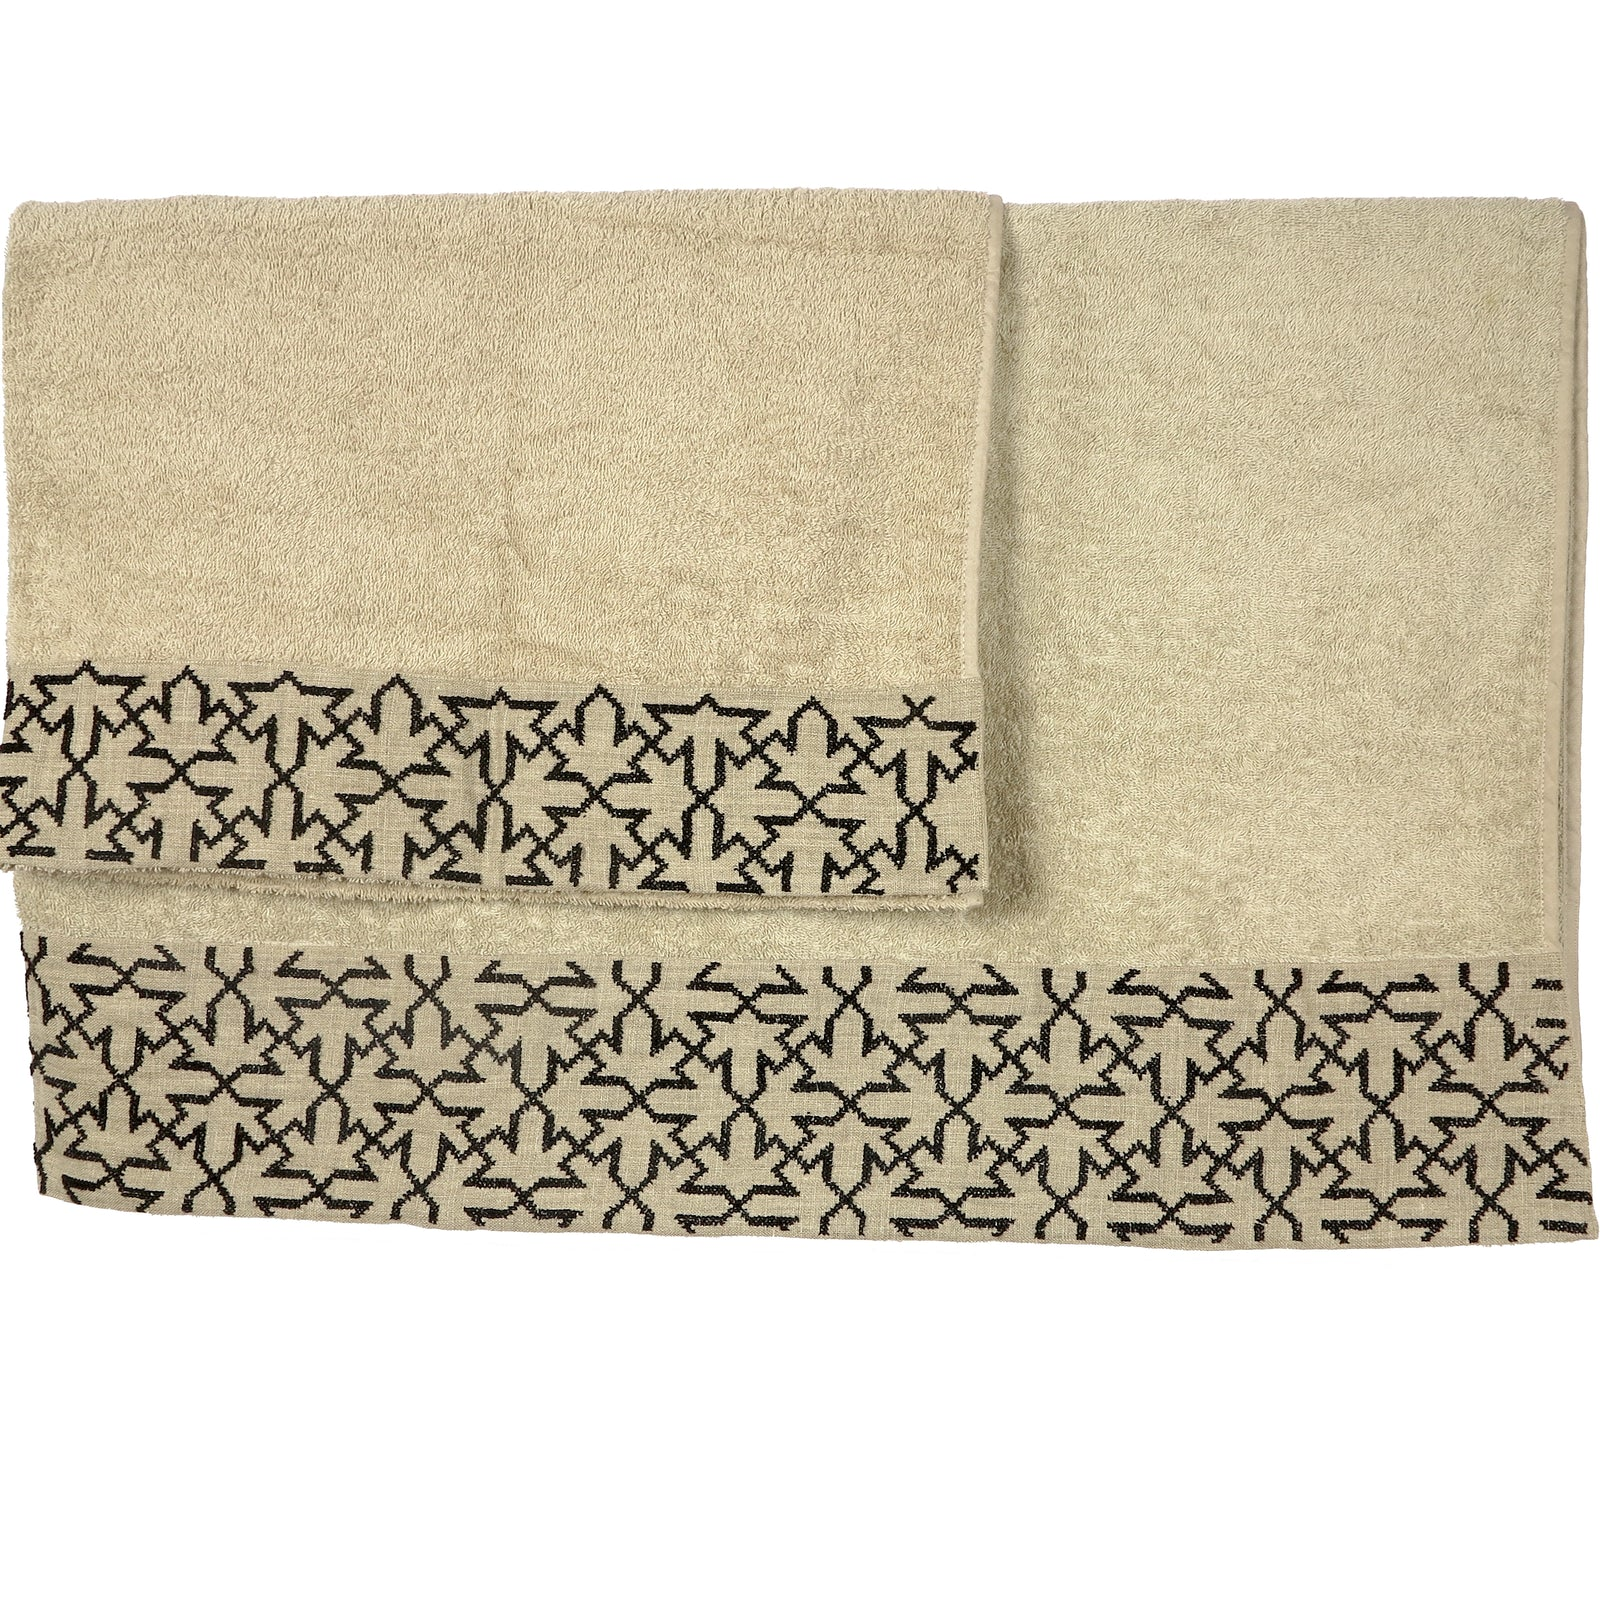 Terry Cotton Towel, honey, Sultan Han® pattern